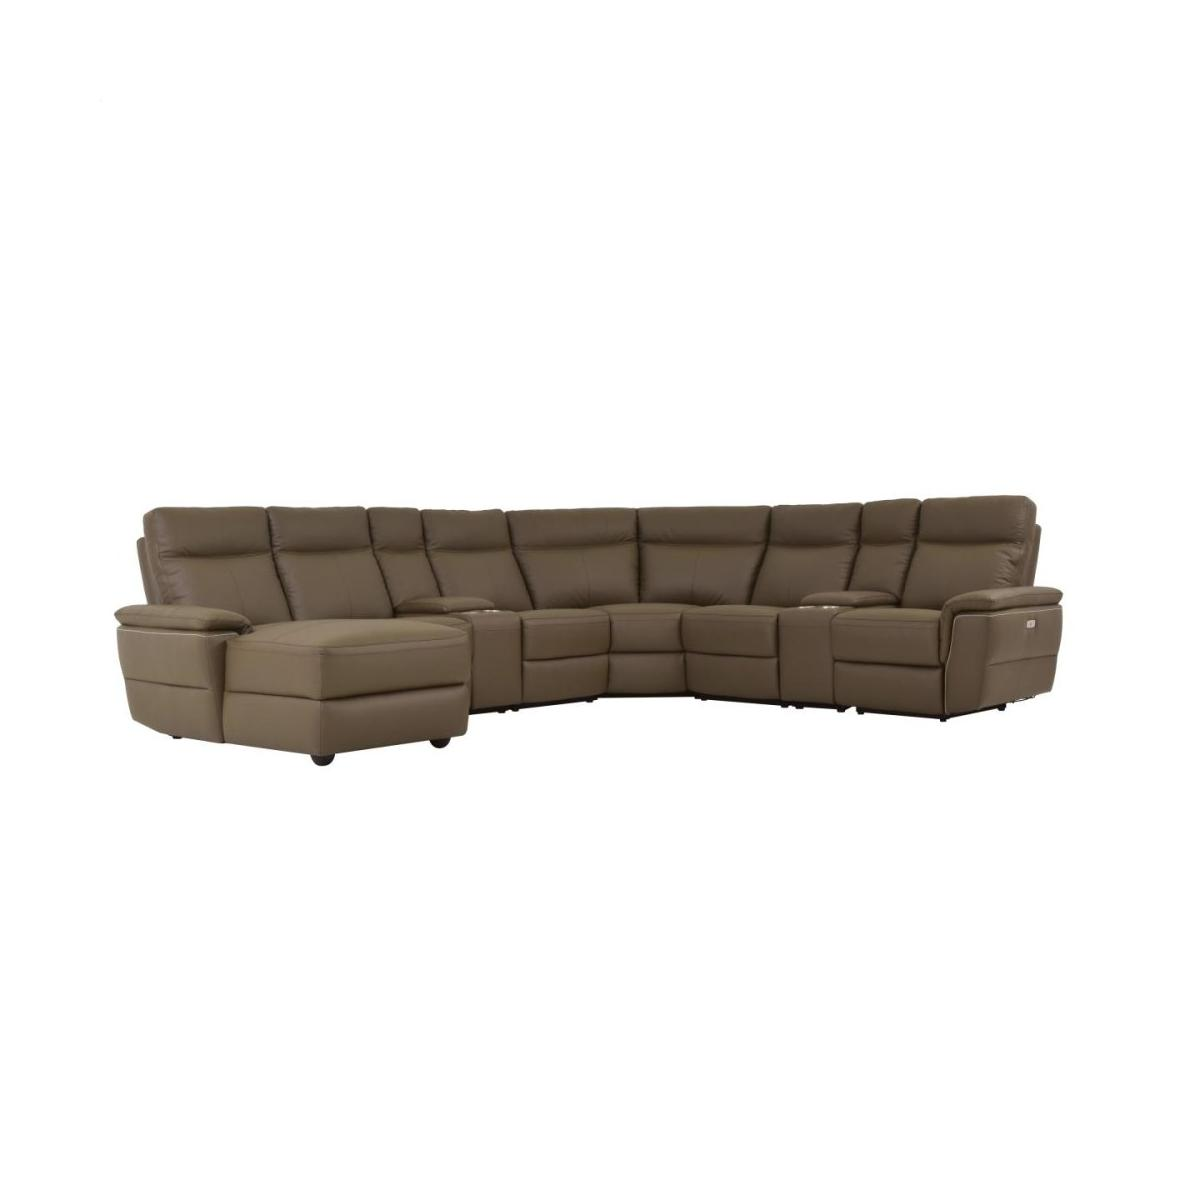 8-Piece Modular Power Reclining Sectional with Left Chaise